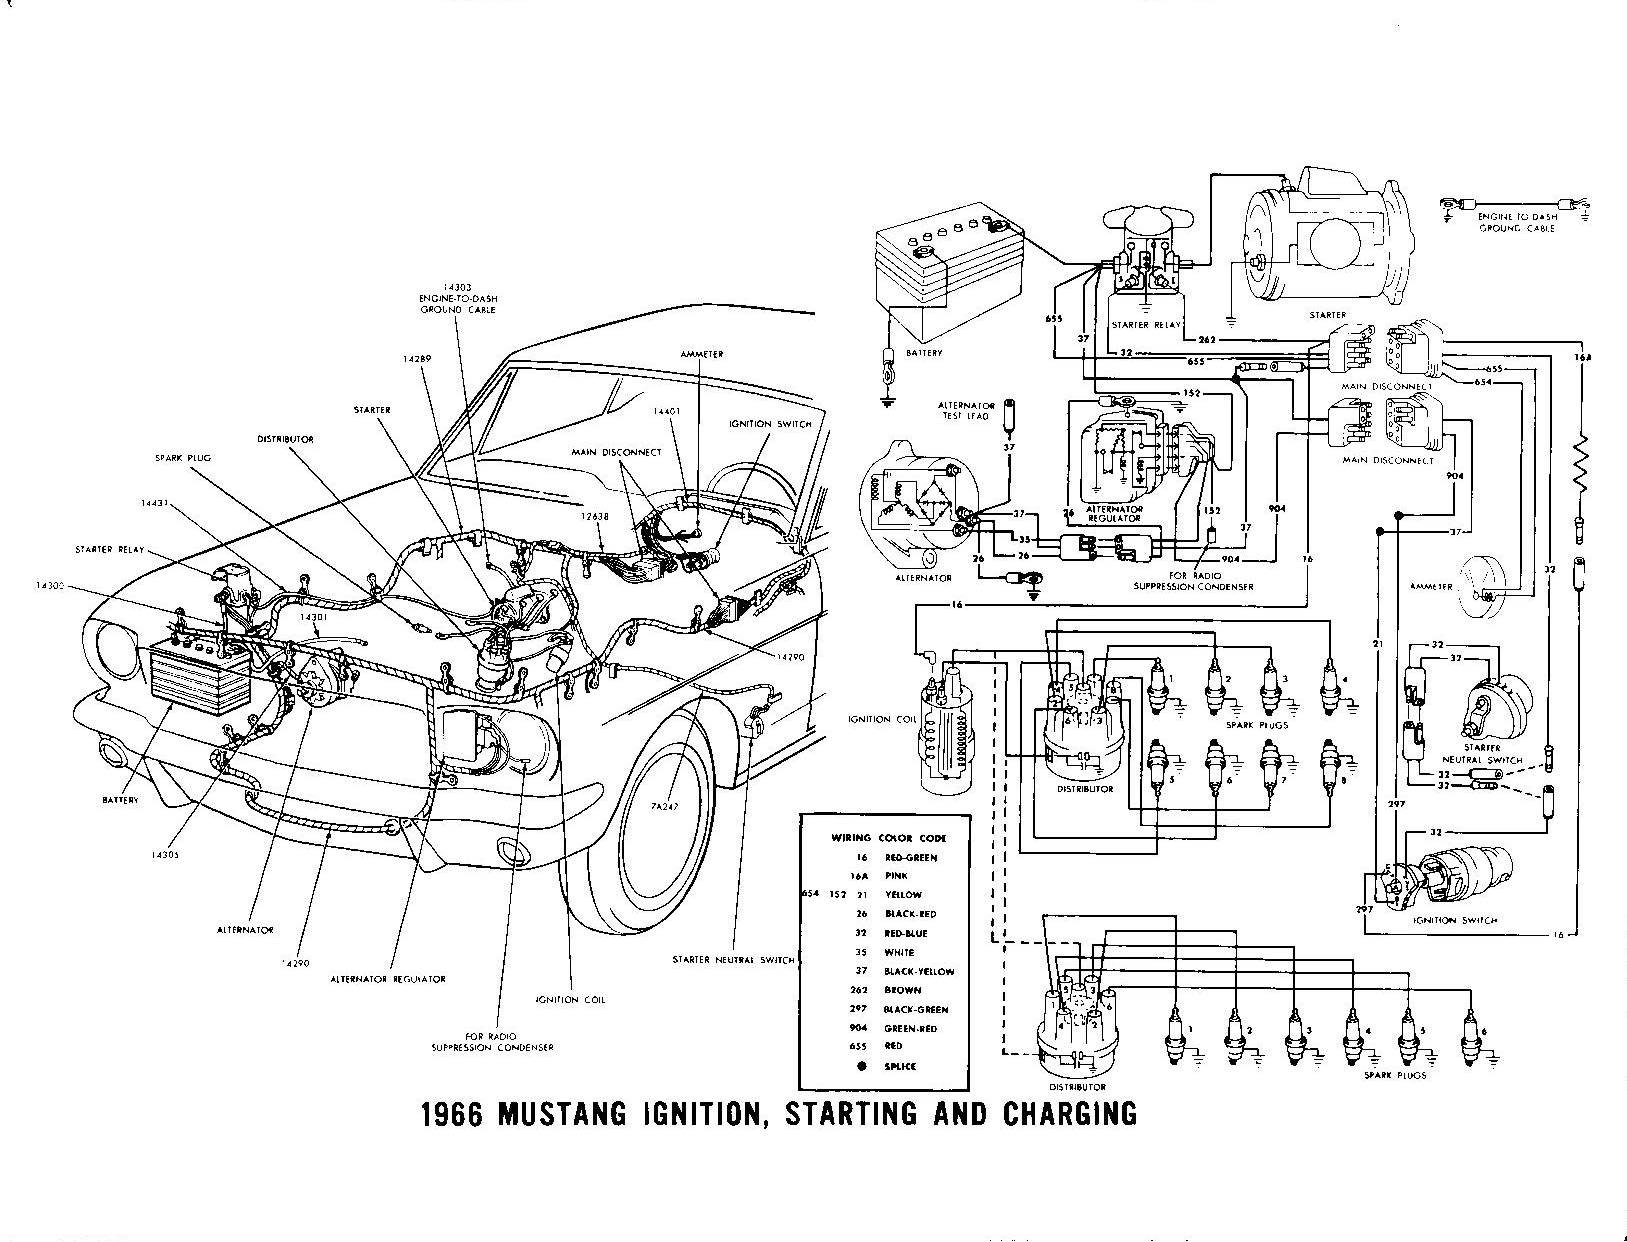 [SCHEMATICS_48ZD]  Voltage Regulator Wiring 1966 Mustang | Ford Mustang Forum | 1966 Mustang Voltage Regulator Wiring Diagram |  | All Ford Mustangs